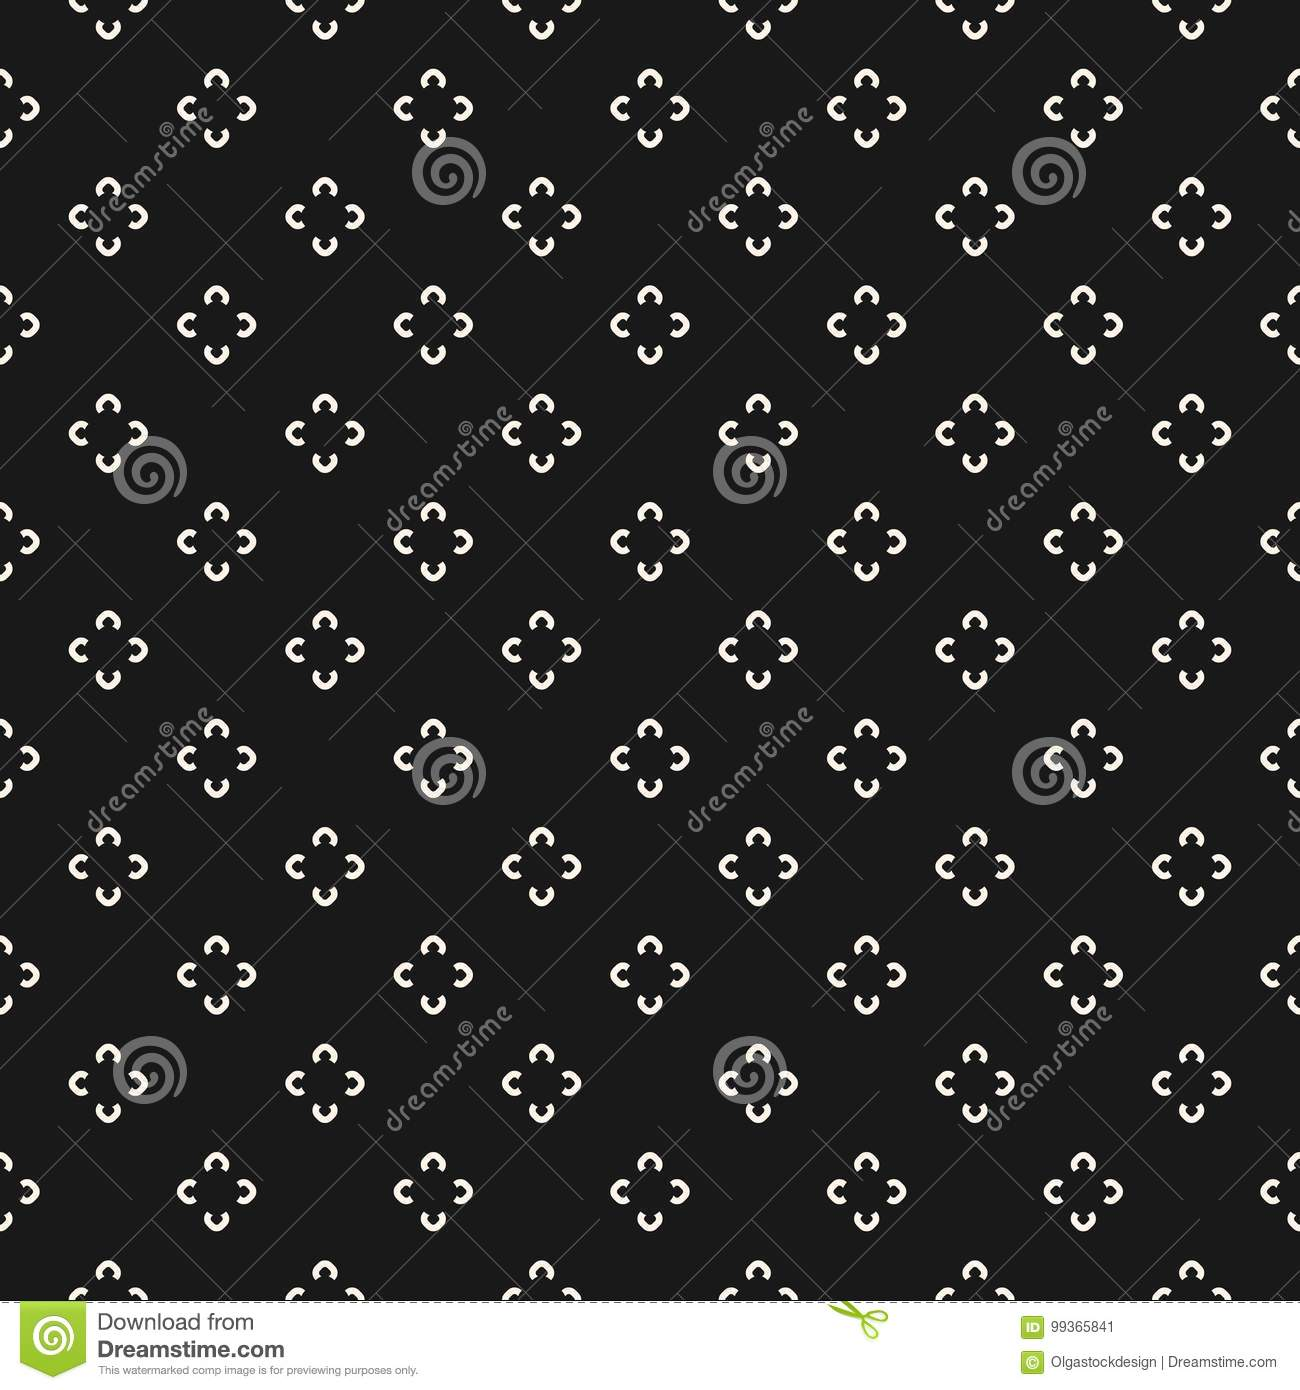 d7b115600 Simple floral pattern. Vector minimalist seamless texture with tiny flower  shapes. Abstract minimal geometric monochrome background.